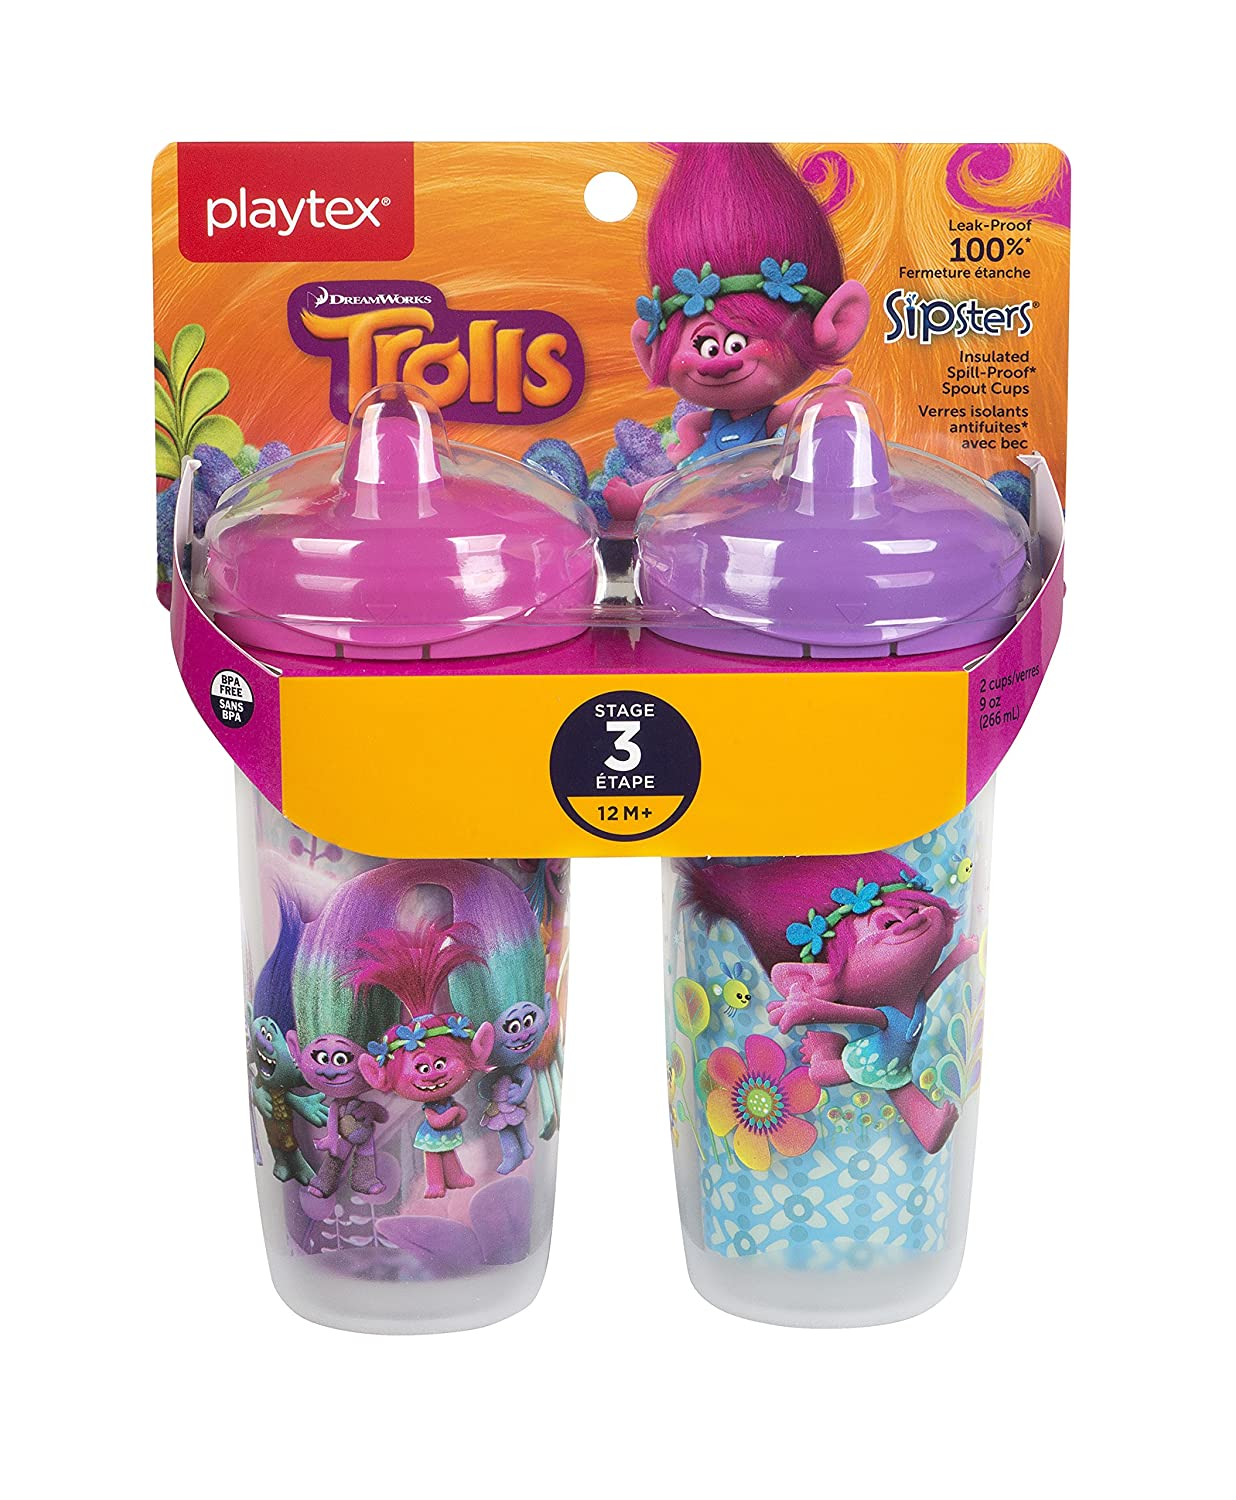 Playtex Baby Sipsters Spill-Proof Trolls Toddler Spout Cup, Stage 3 (12+ Months), Pack of 2 Edgewell Personal Care 10078300024047